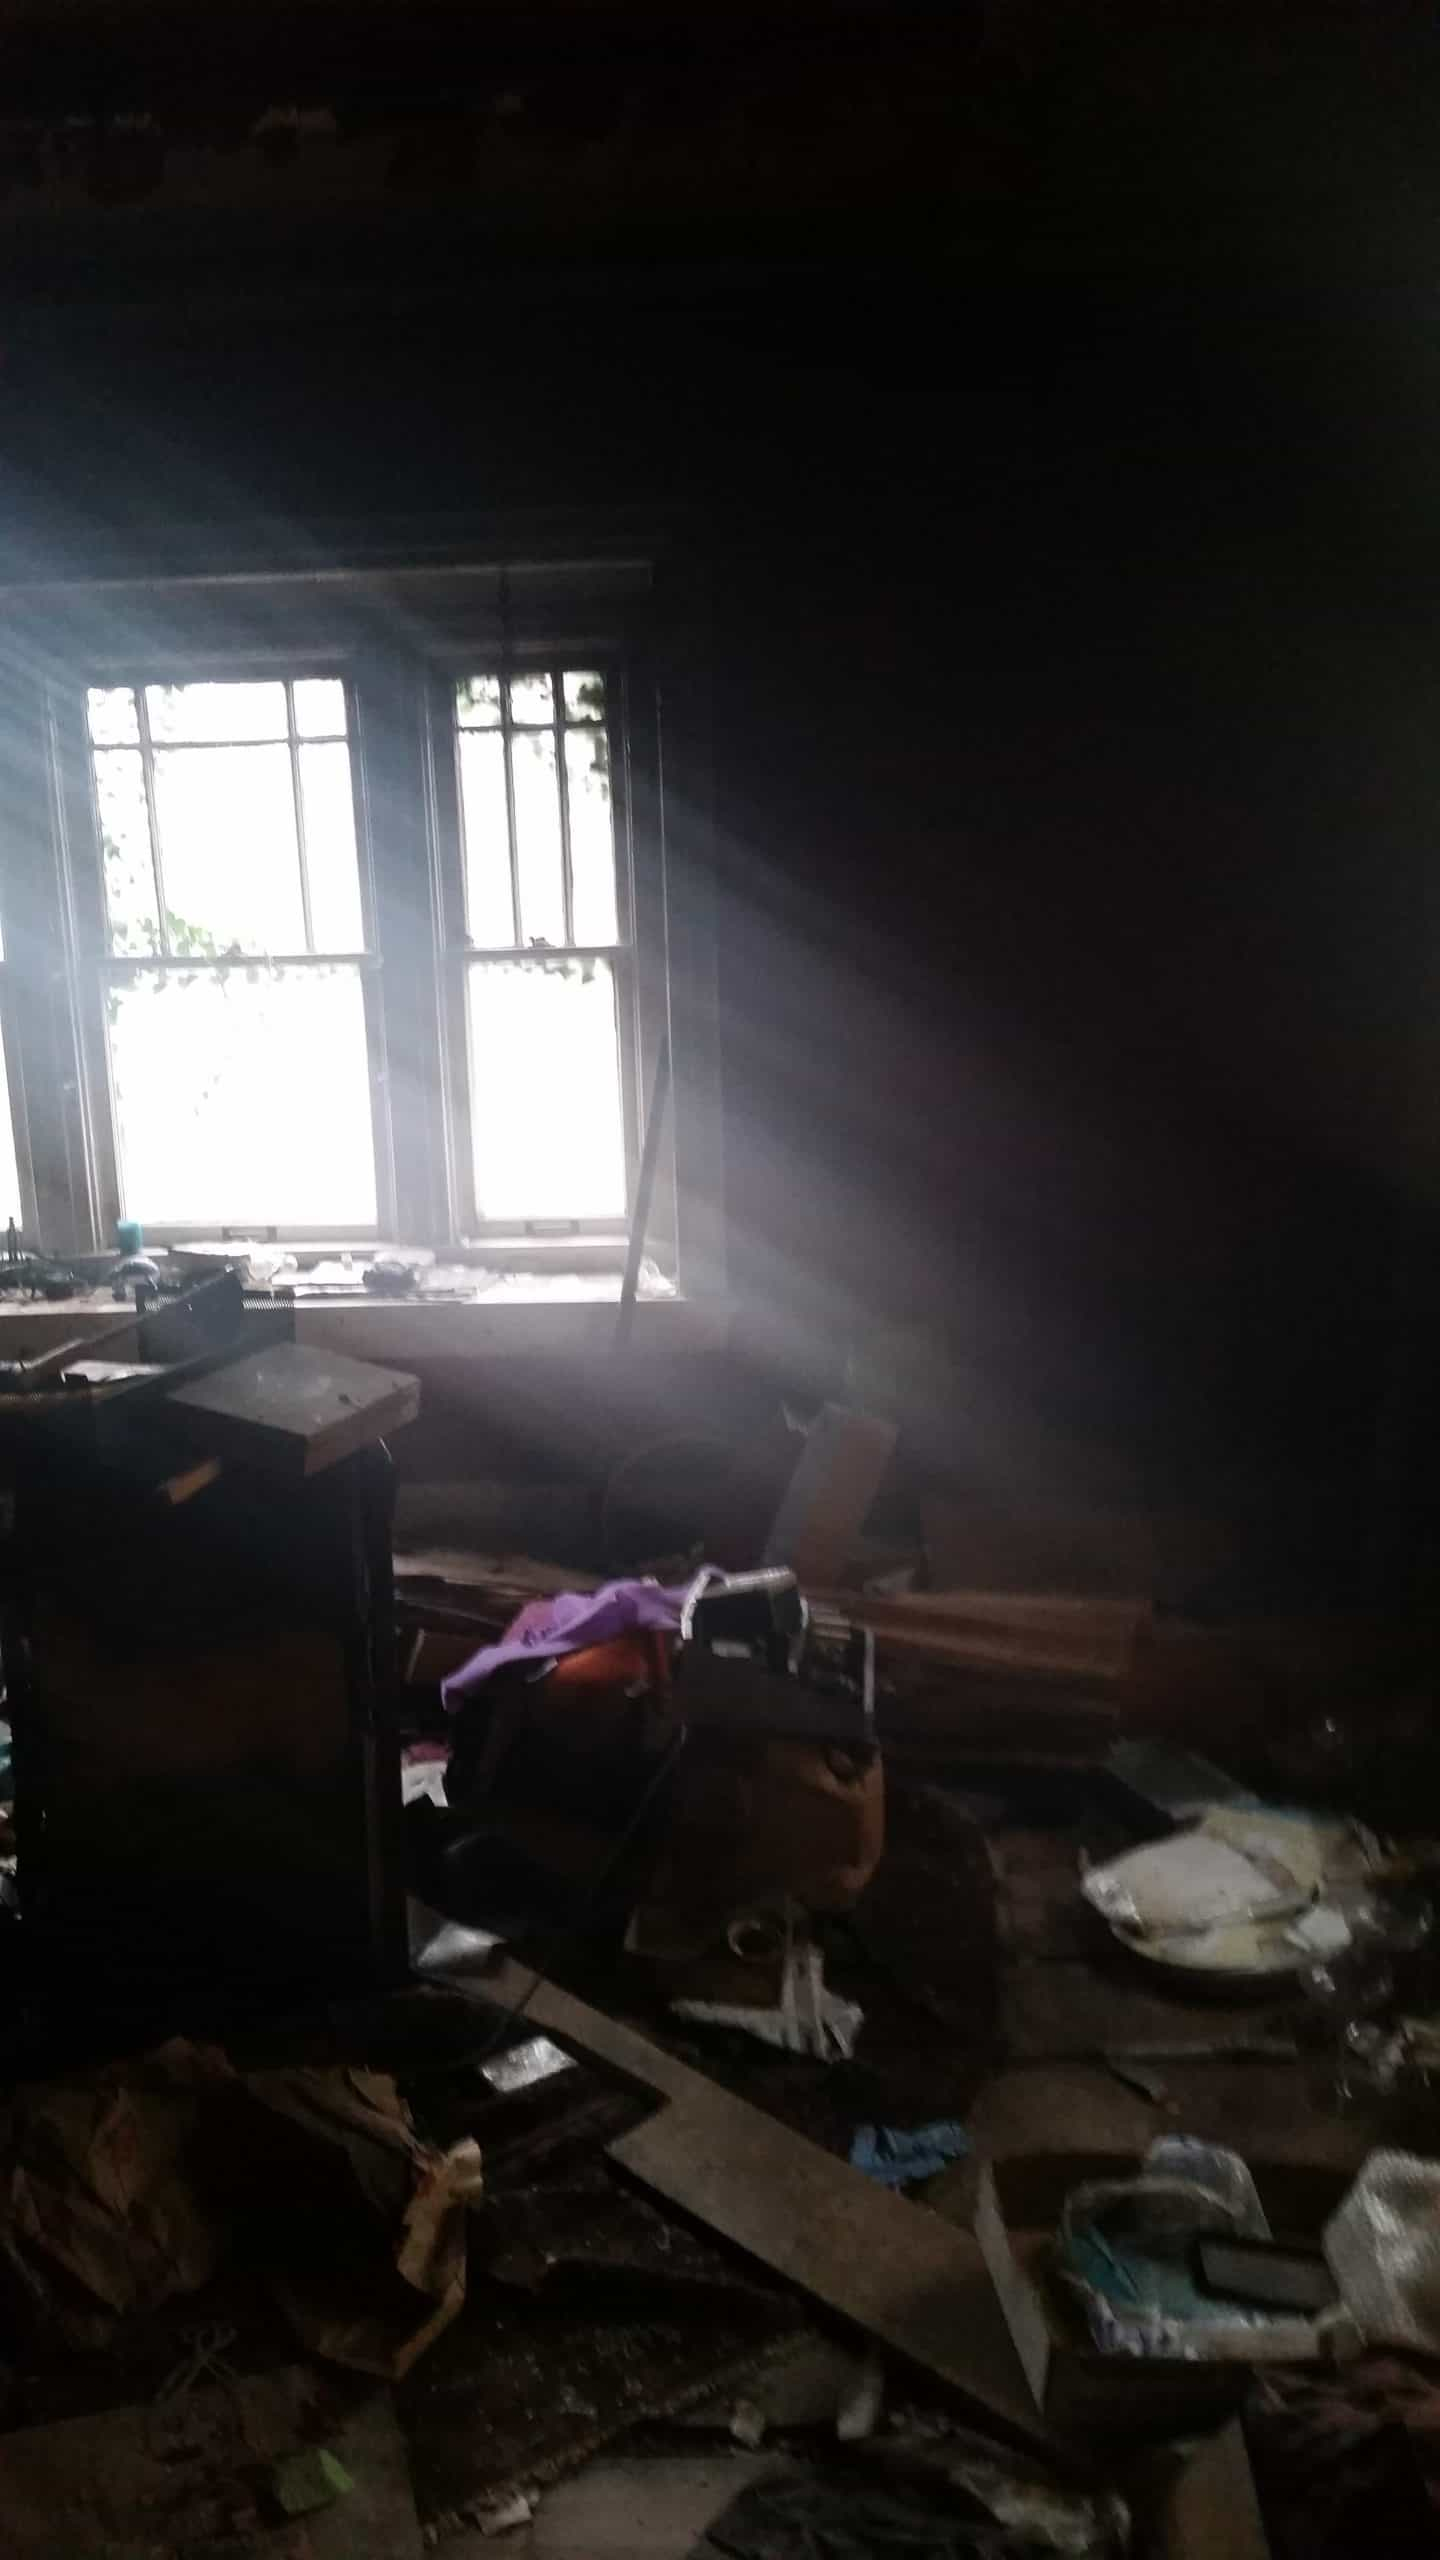 Interior of a dark house with debris piled on the floor and a window letting light in.